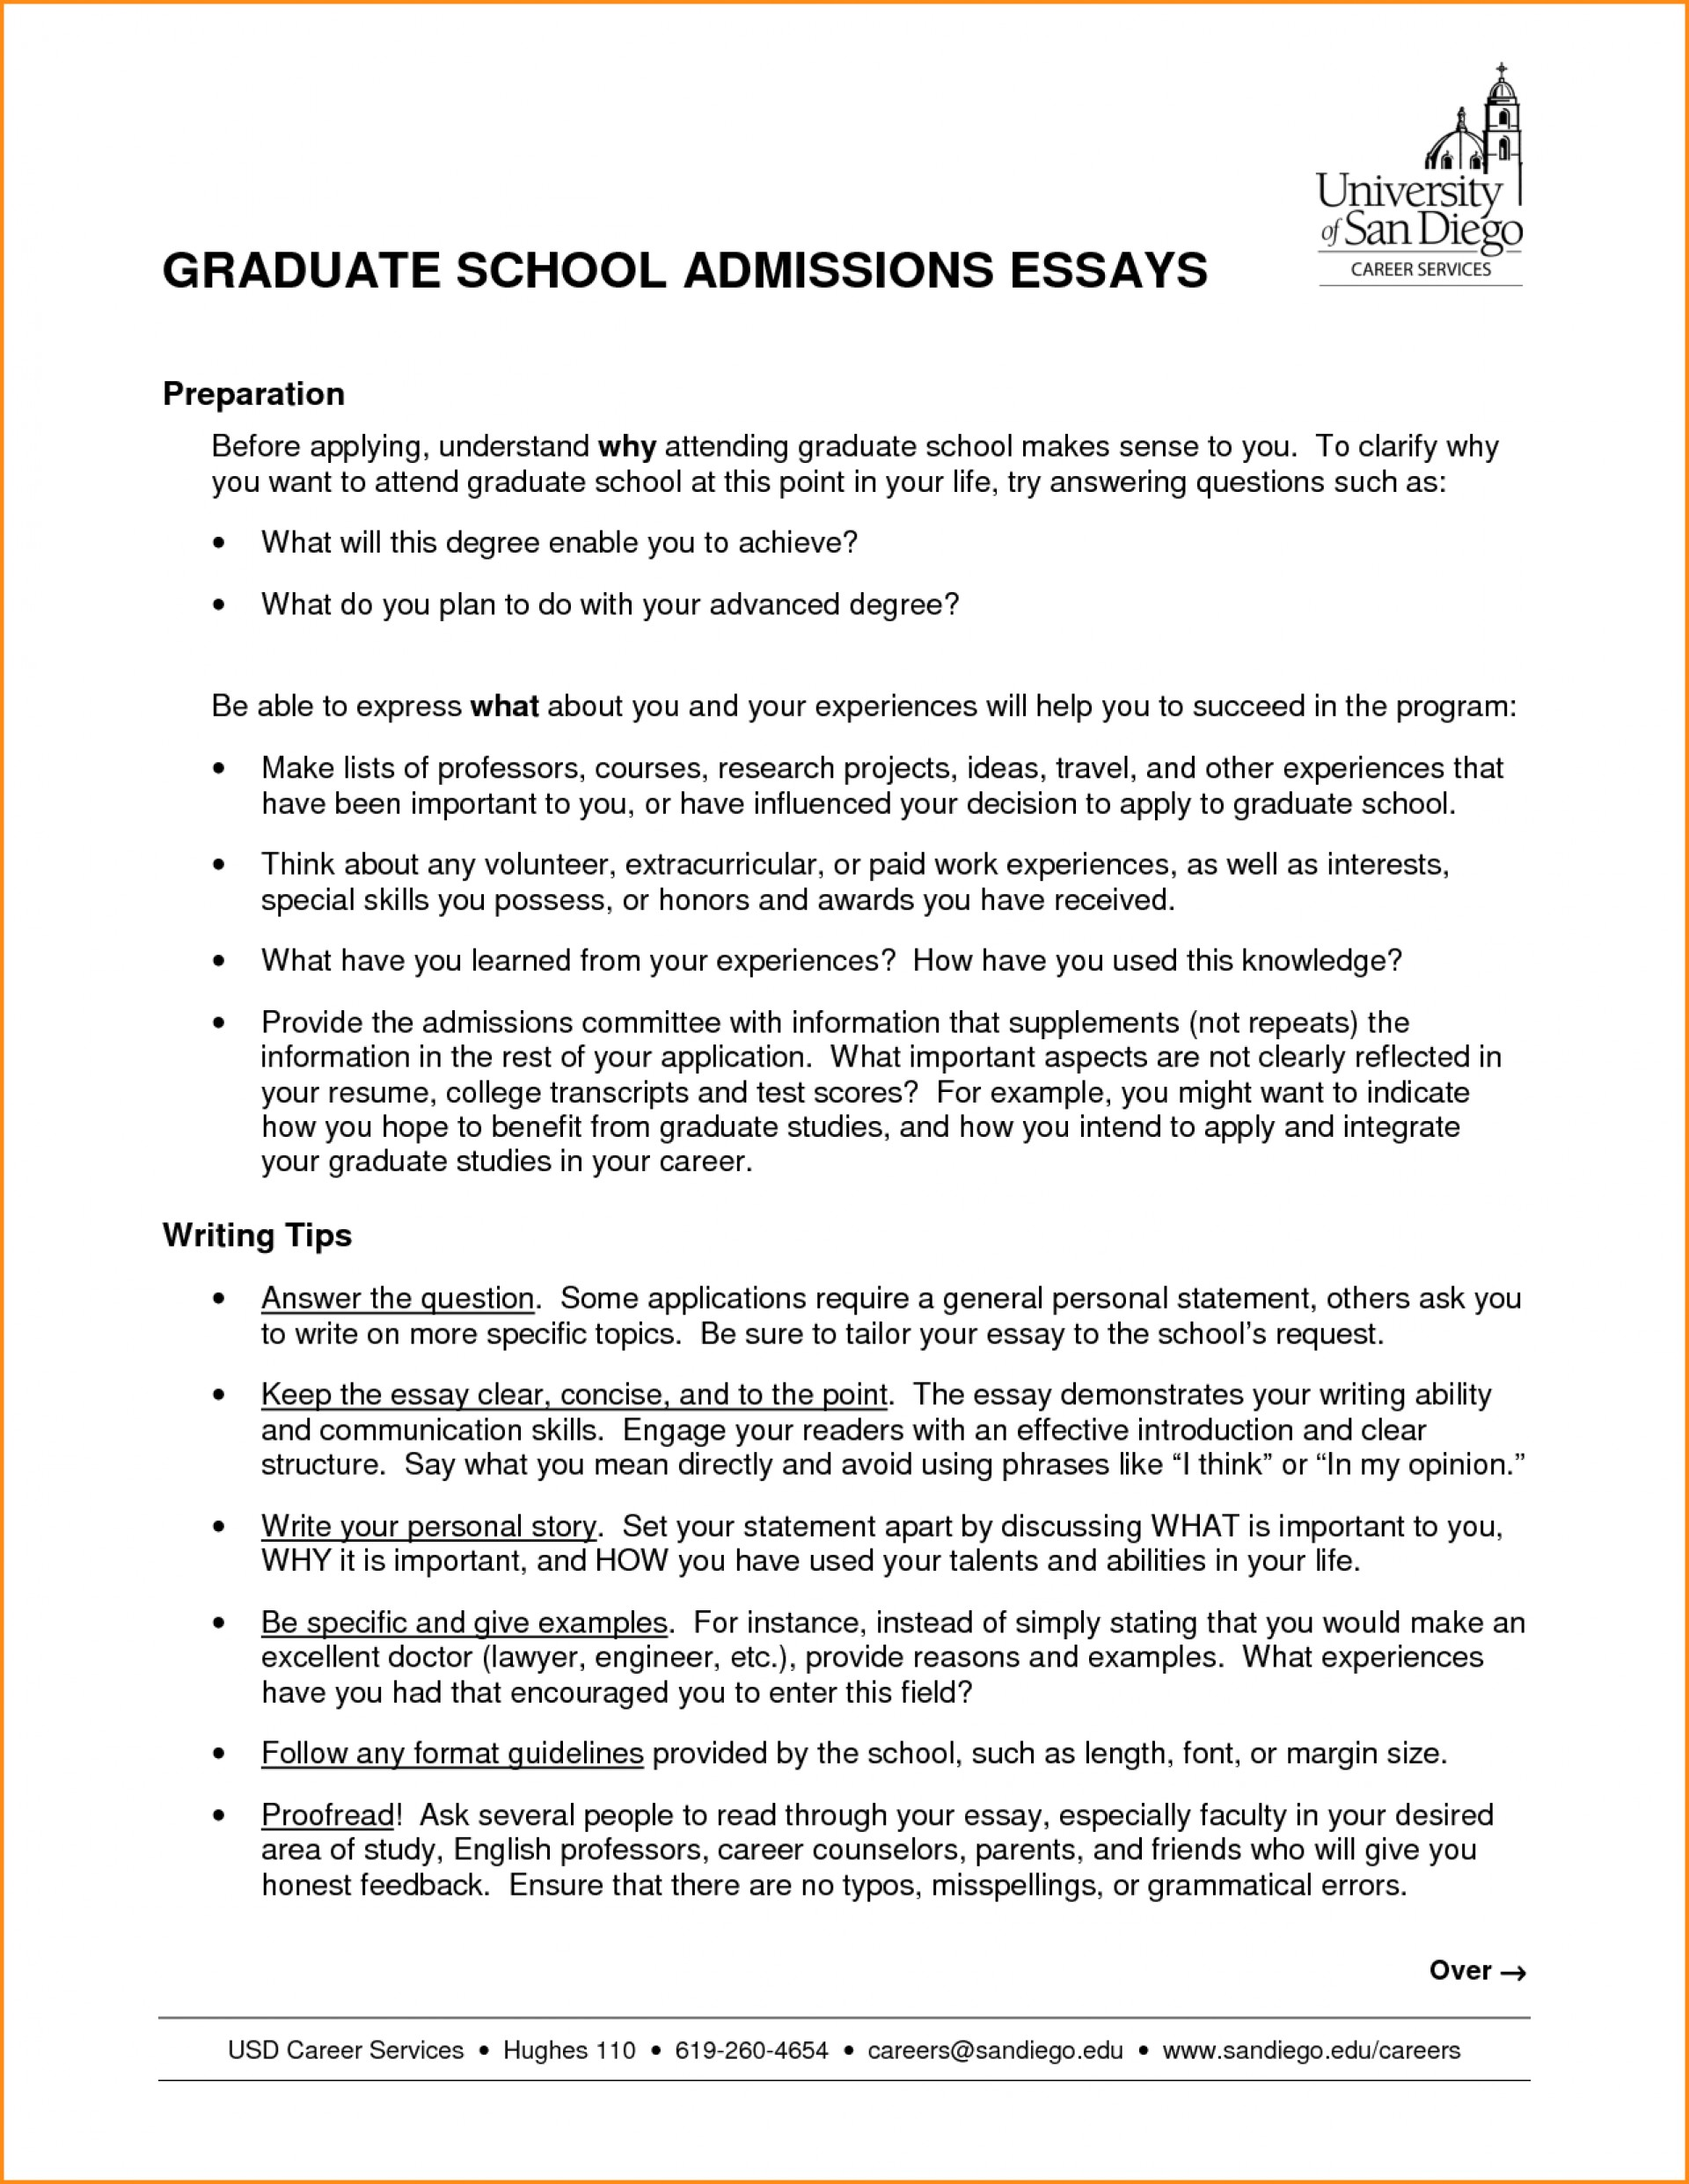 005 High School Graduation Essay Science Competitions For Students Pics Sample College Essays Applic International Competition Contests Rare Day Ceremony 1920